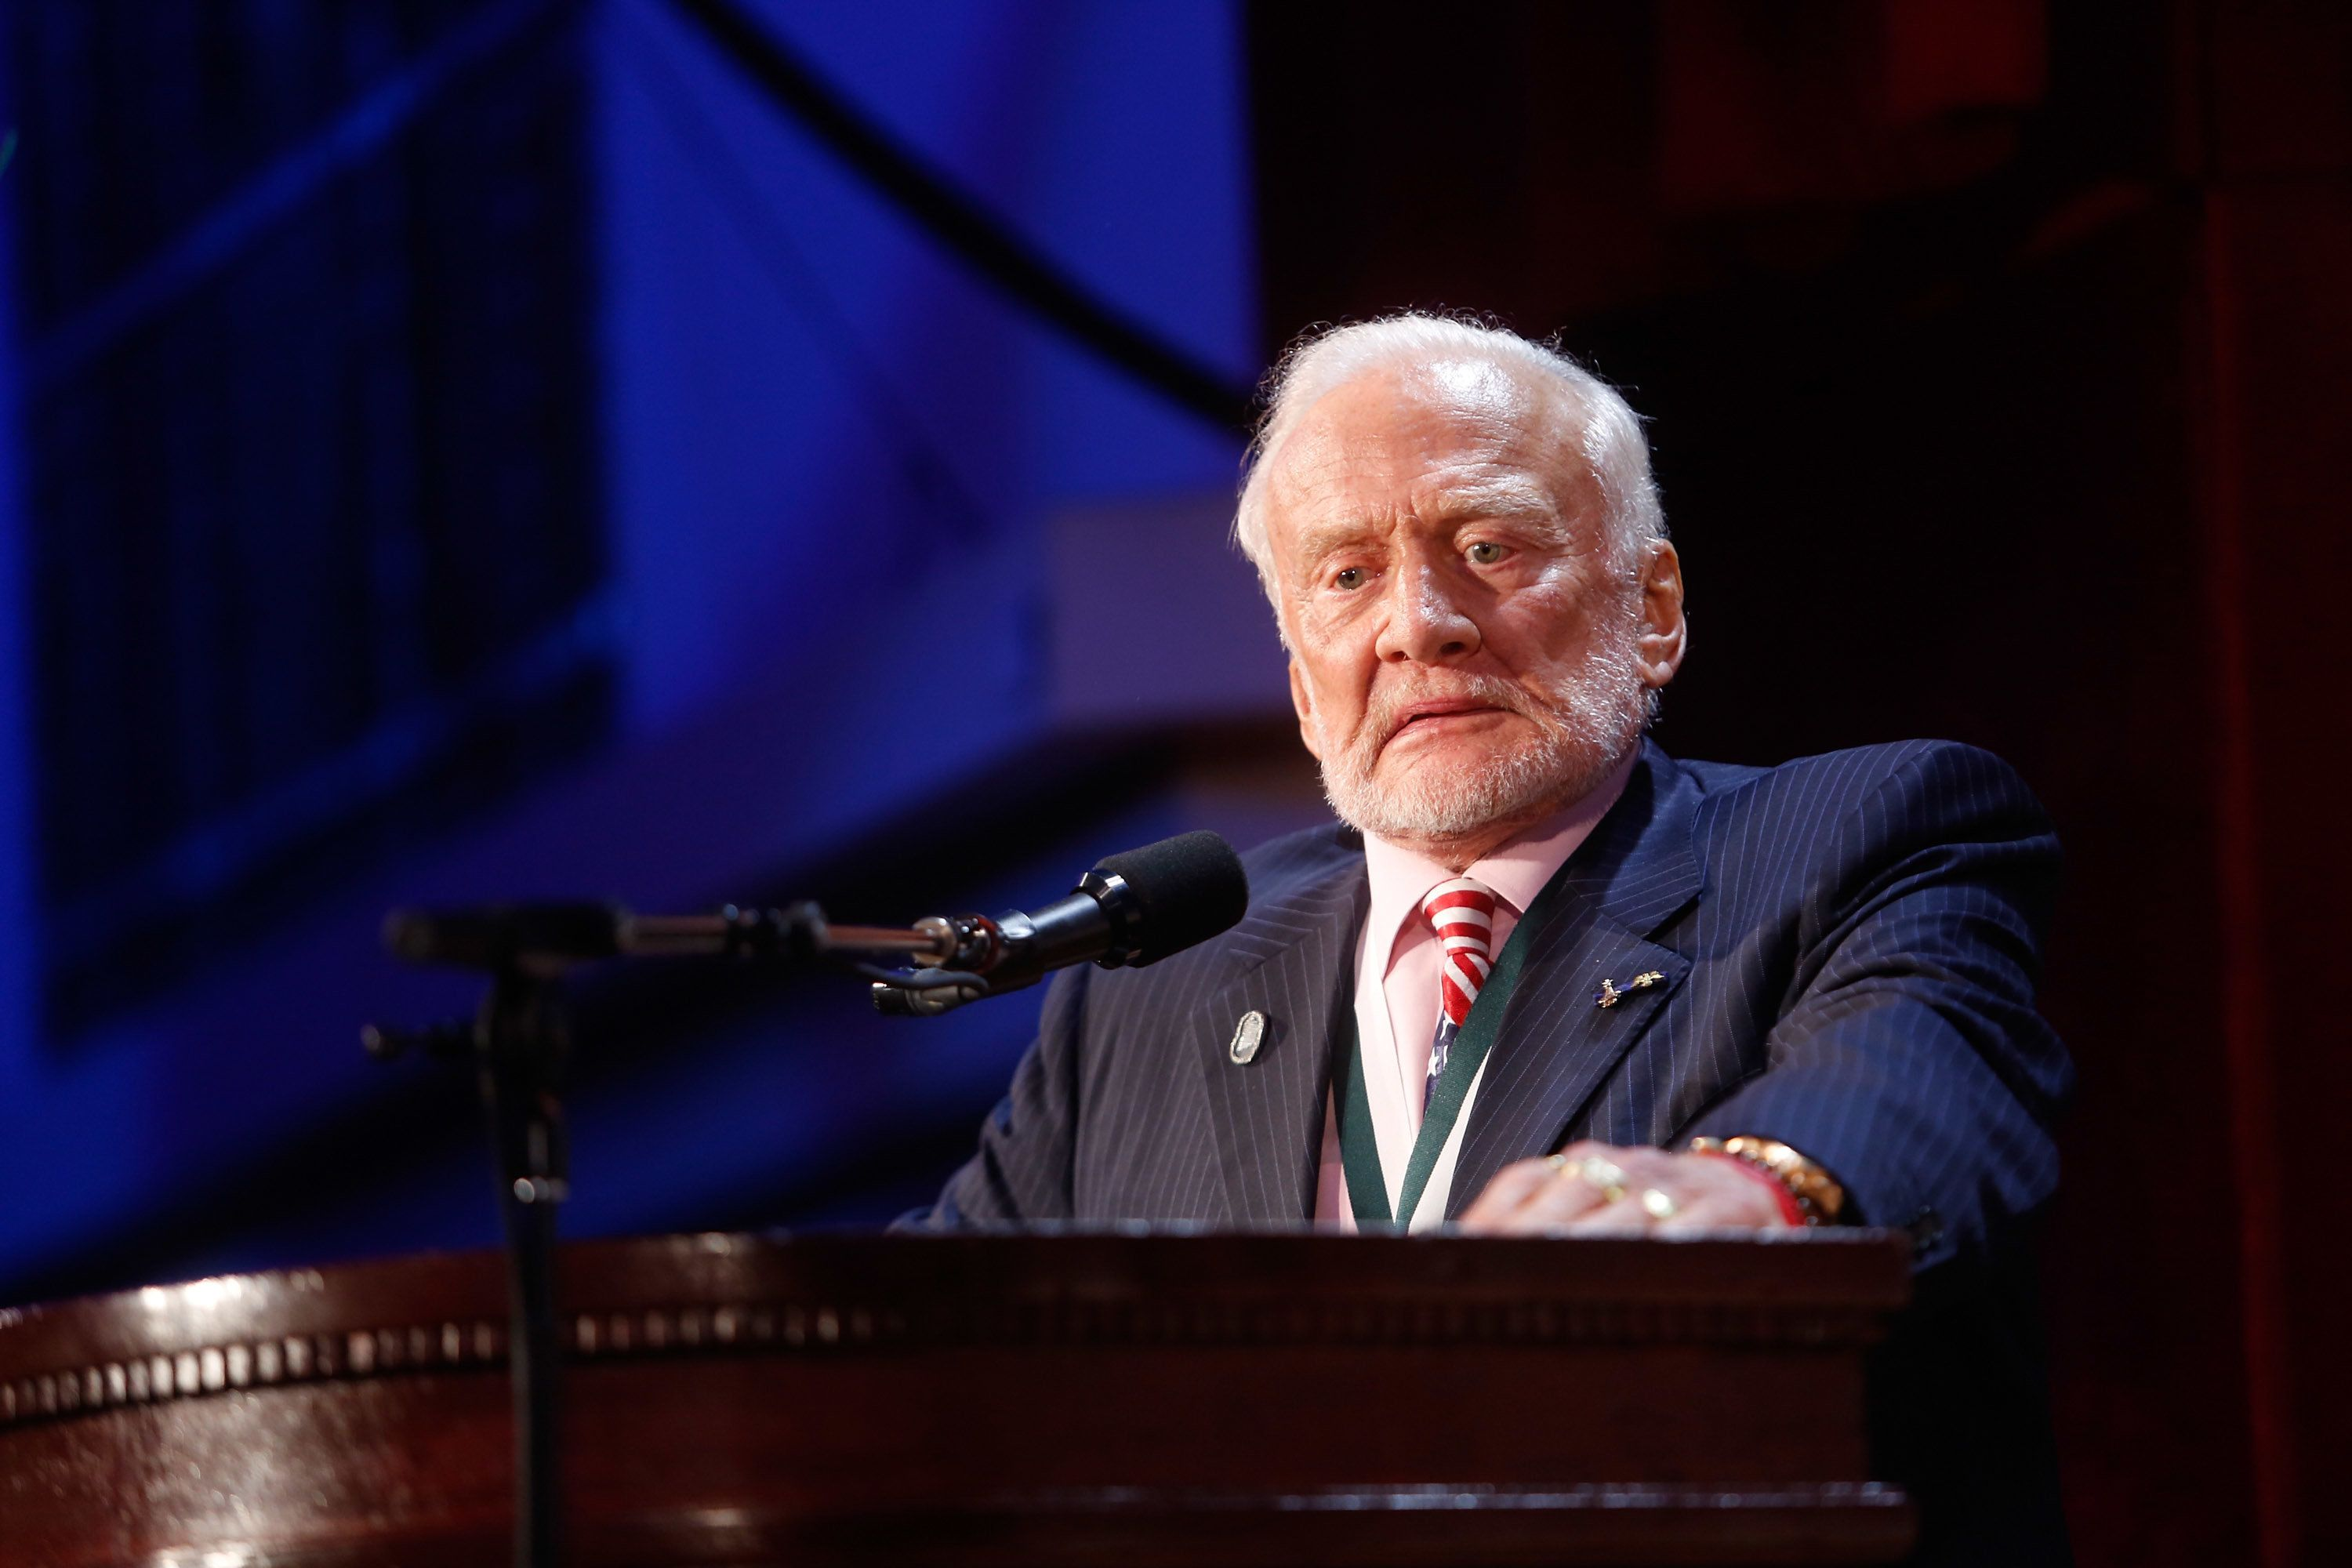 NEW YORK, NY - SEPTEMBER 12:  The Great American Icon Award recipient Buzz Aldrin speaks onstage during the 31th Annual Great Sports Legends Dinner to benefit The Buoniconti Fund to Cure Paralysis at The Waldorf Astoria Hotel on September 12, 2016 in New York City.  (Photo by Thos Robinson/Getty Images for The Buoniconti Fund)